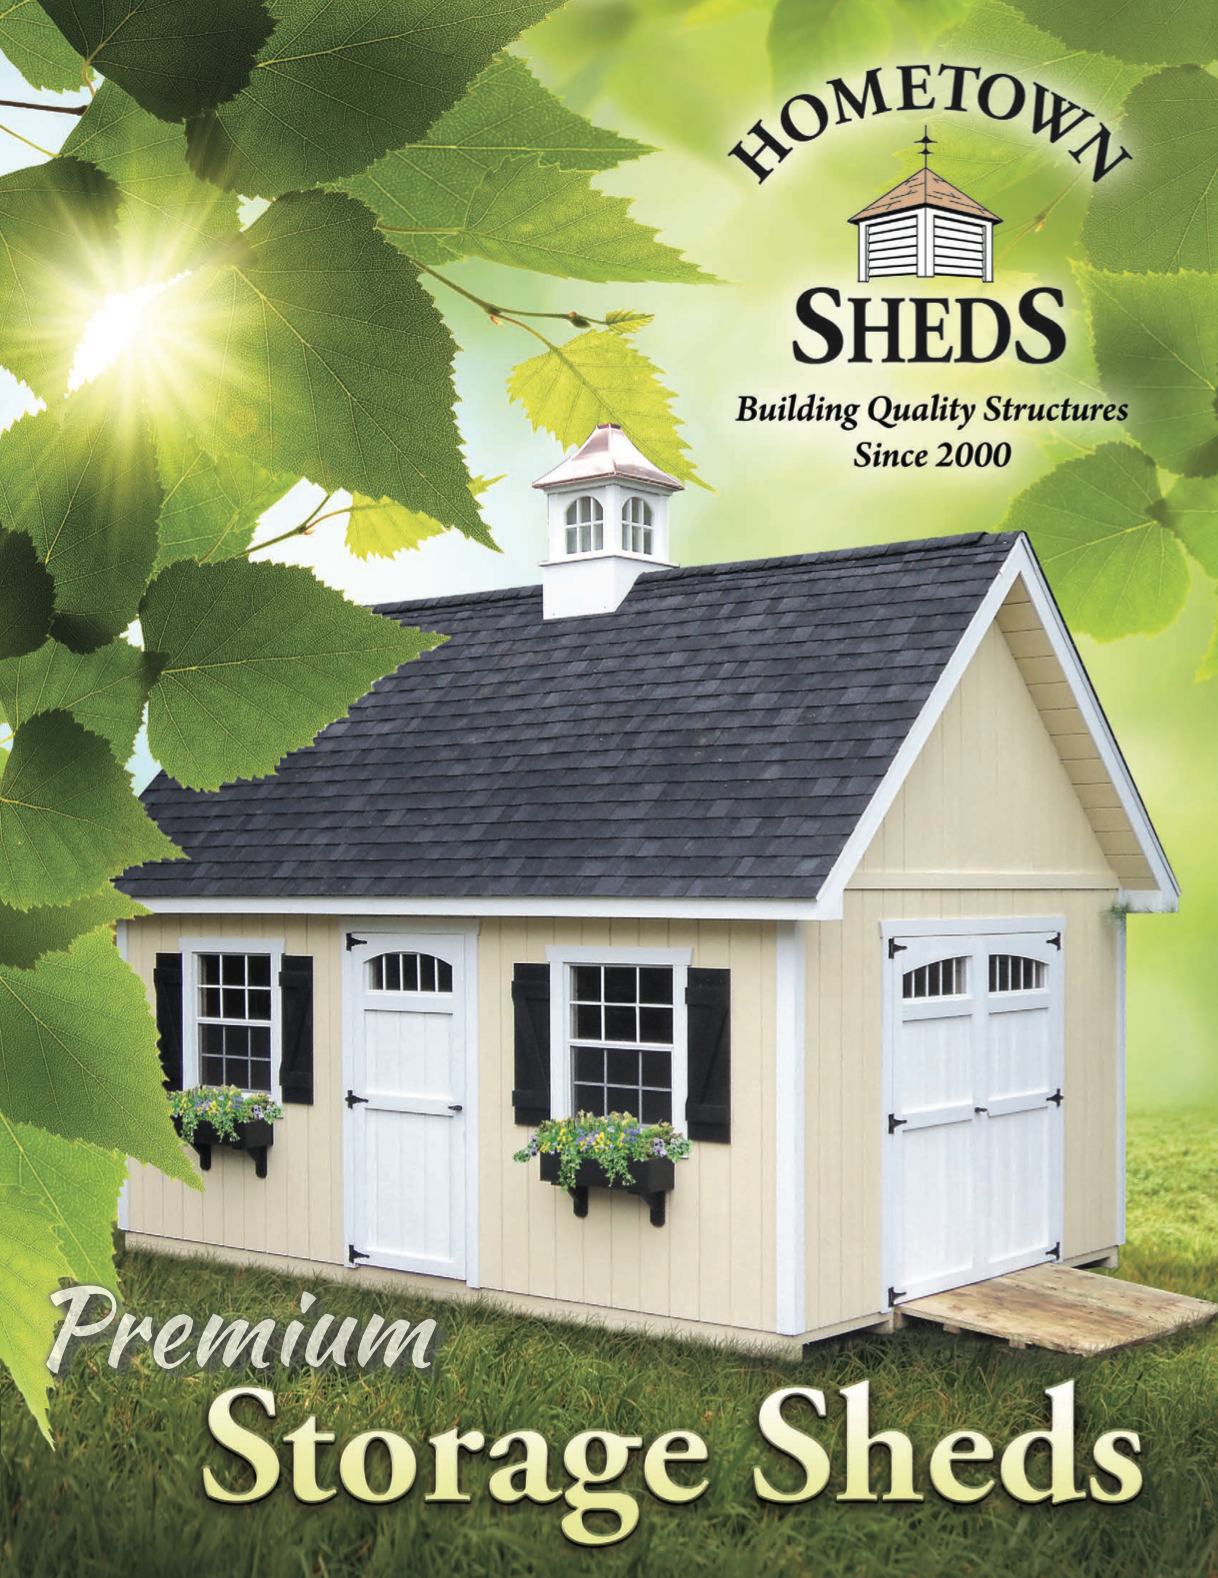 Hometown Sheds Catalog - Decks Plus